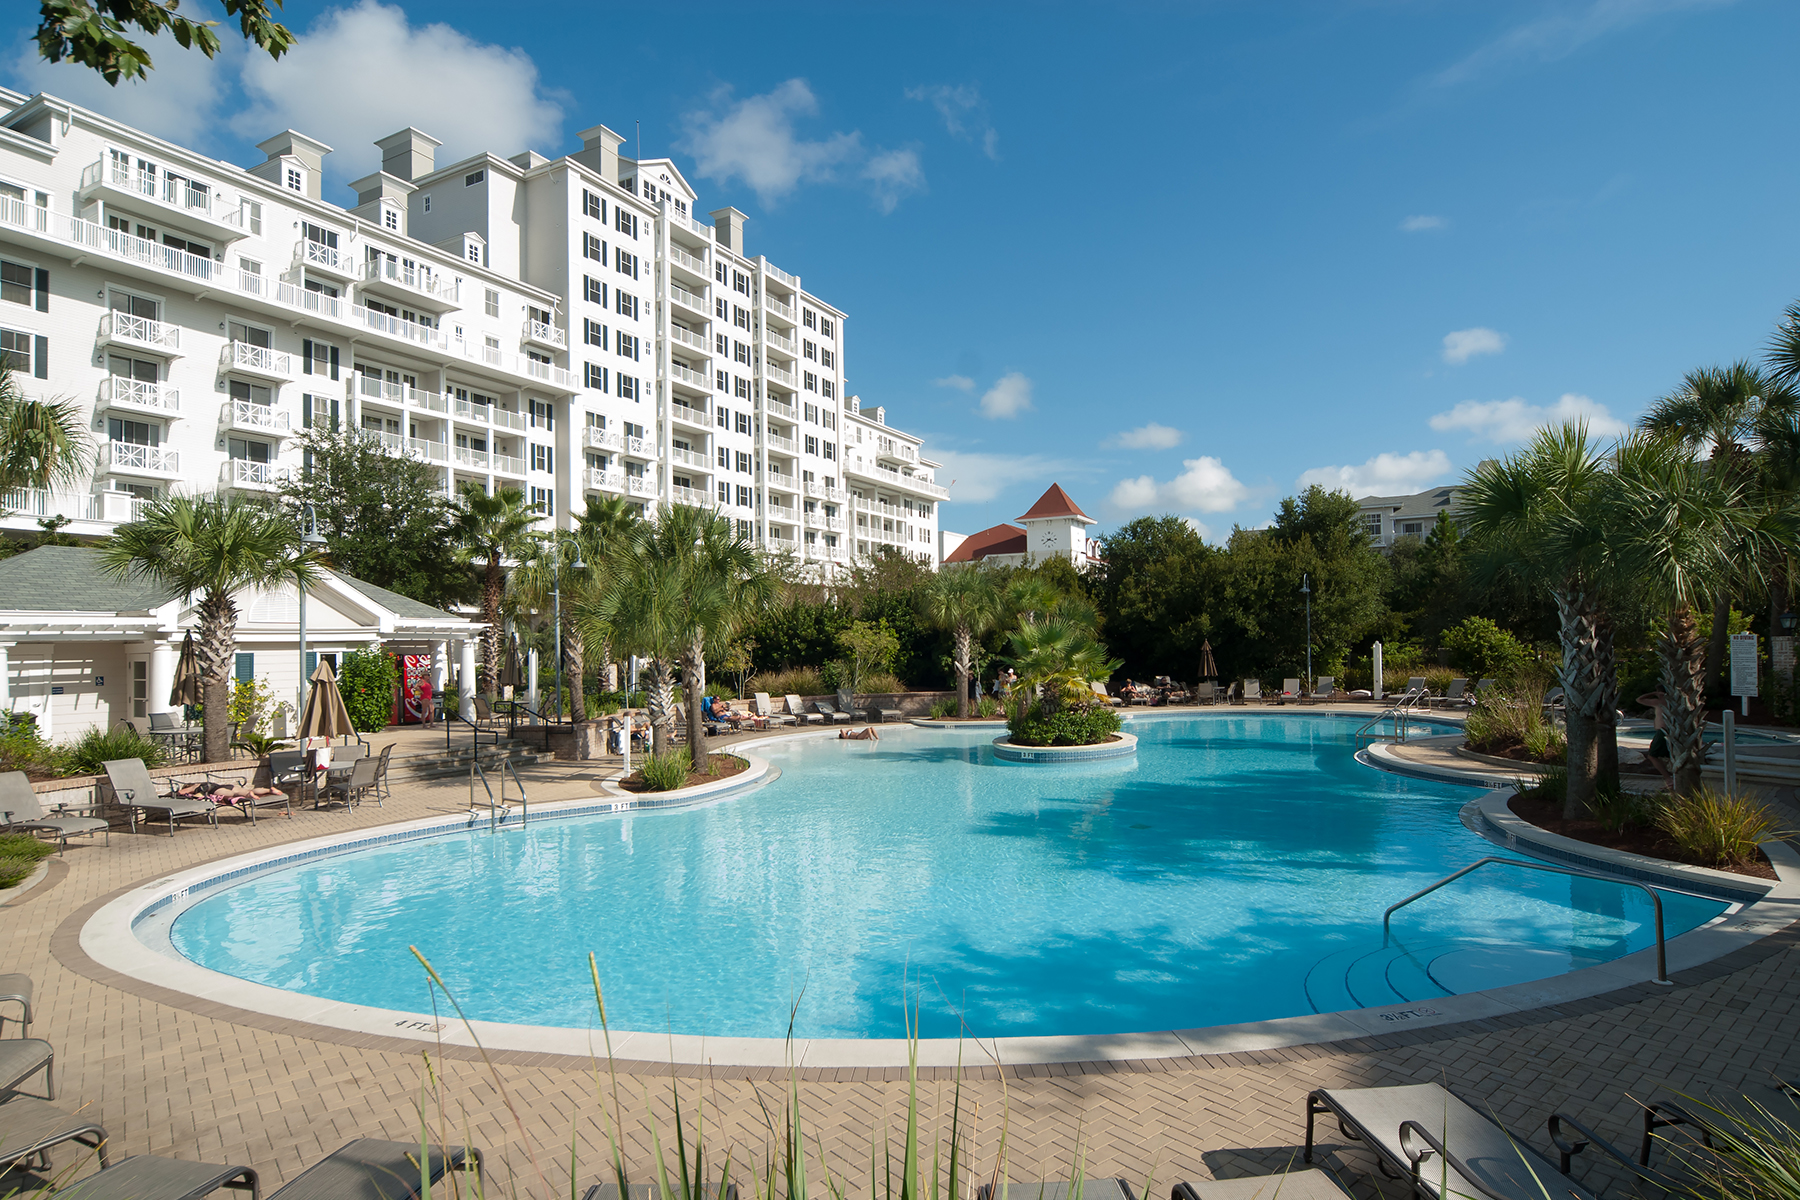 Condominium for Sale at PENTHOUSE LEVEL LOCKOUT IN TURNKEY CONDITION 9600 Grand Sandestin Boulevard 3507 Miramar Beach, Florida, 32550 United States